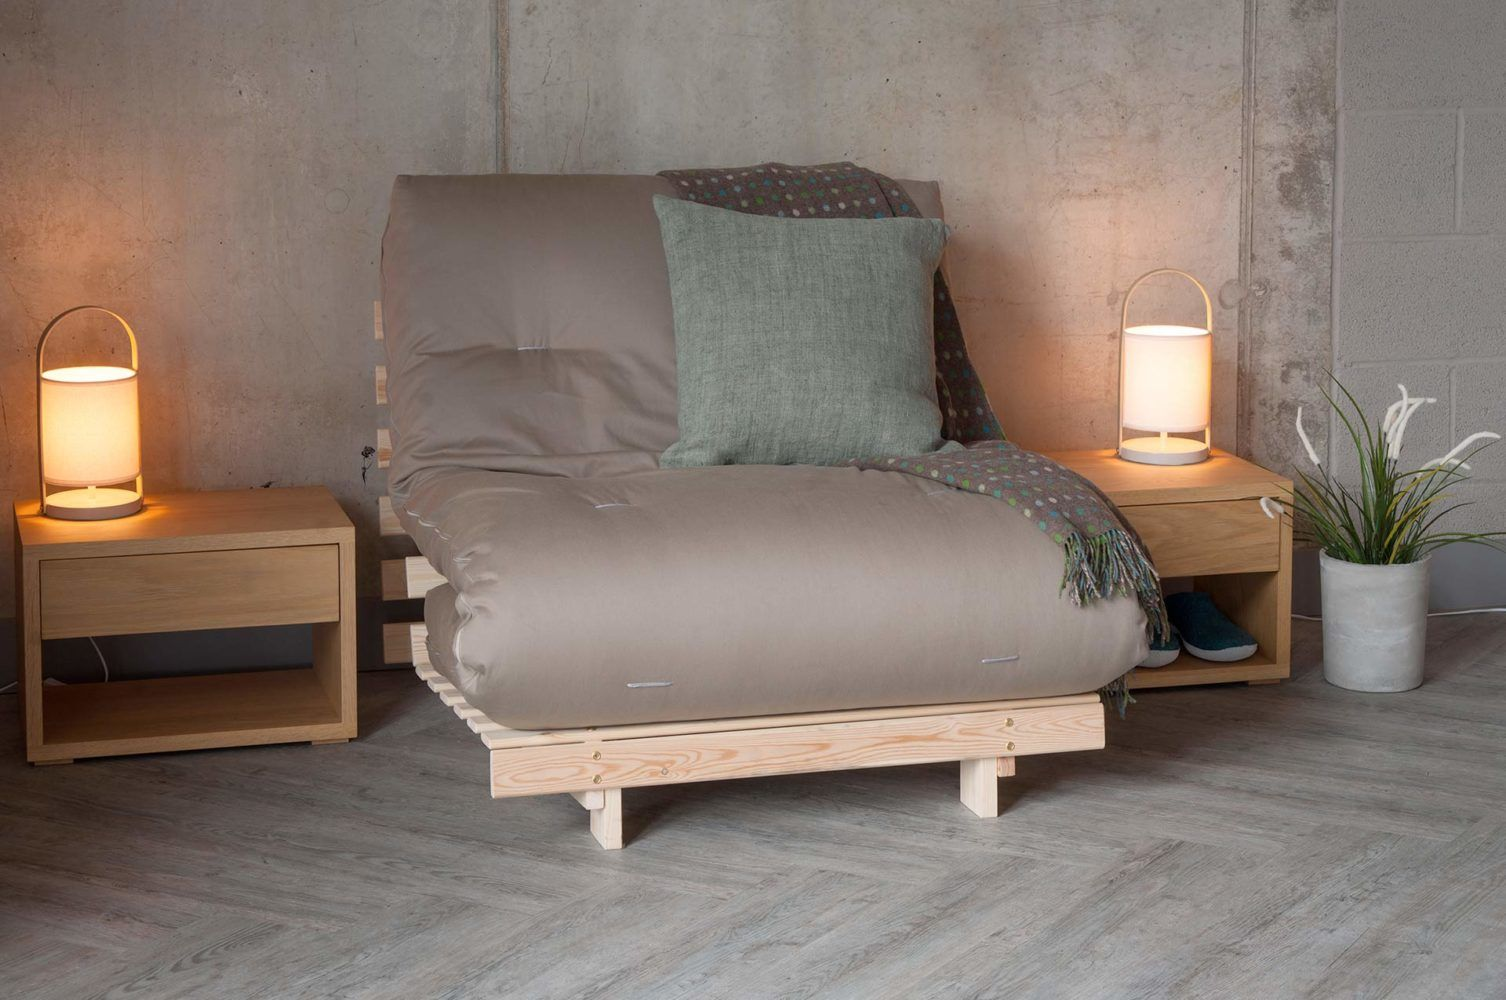 The Tokyo Futon Sofa Bed Has A Slatted Pine Base And 7 Layer Mattress